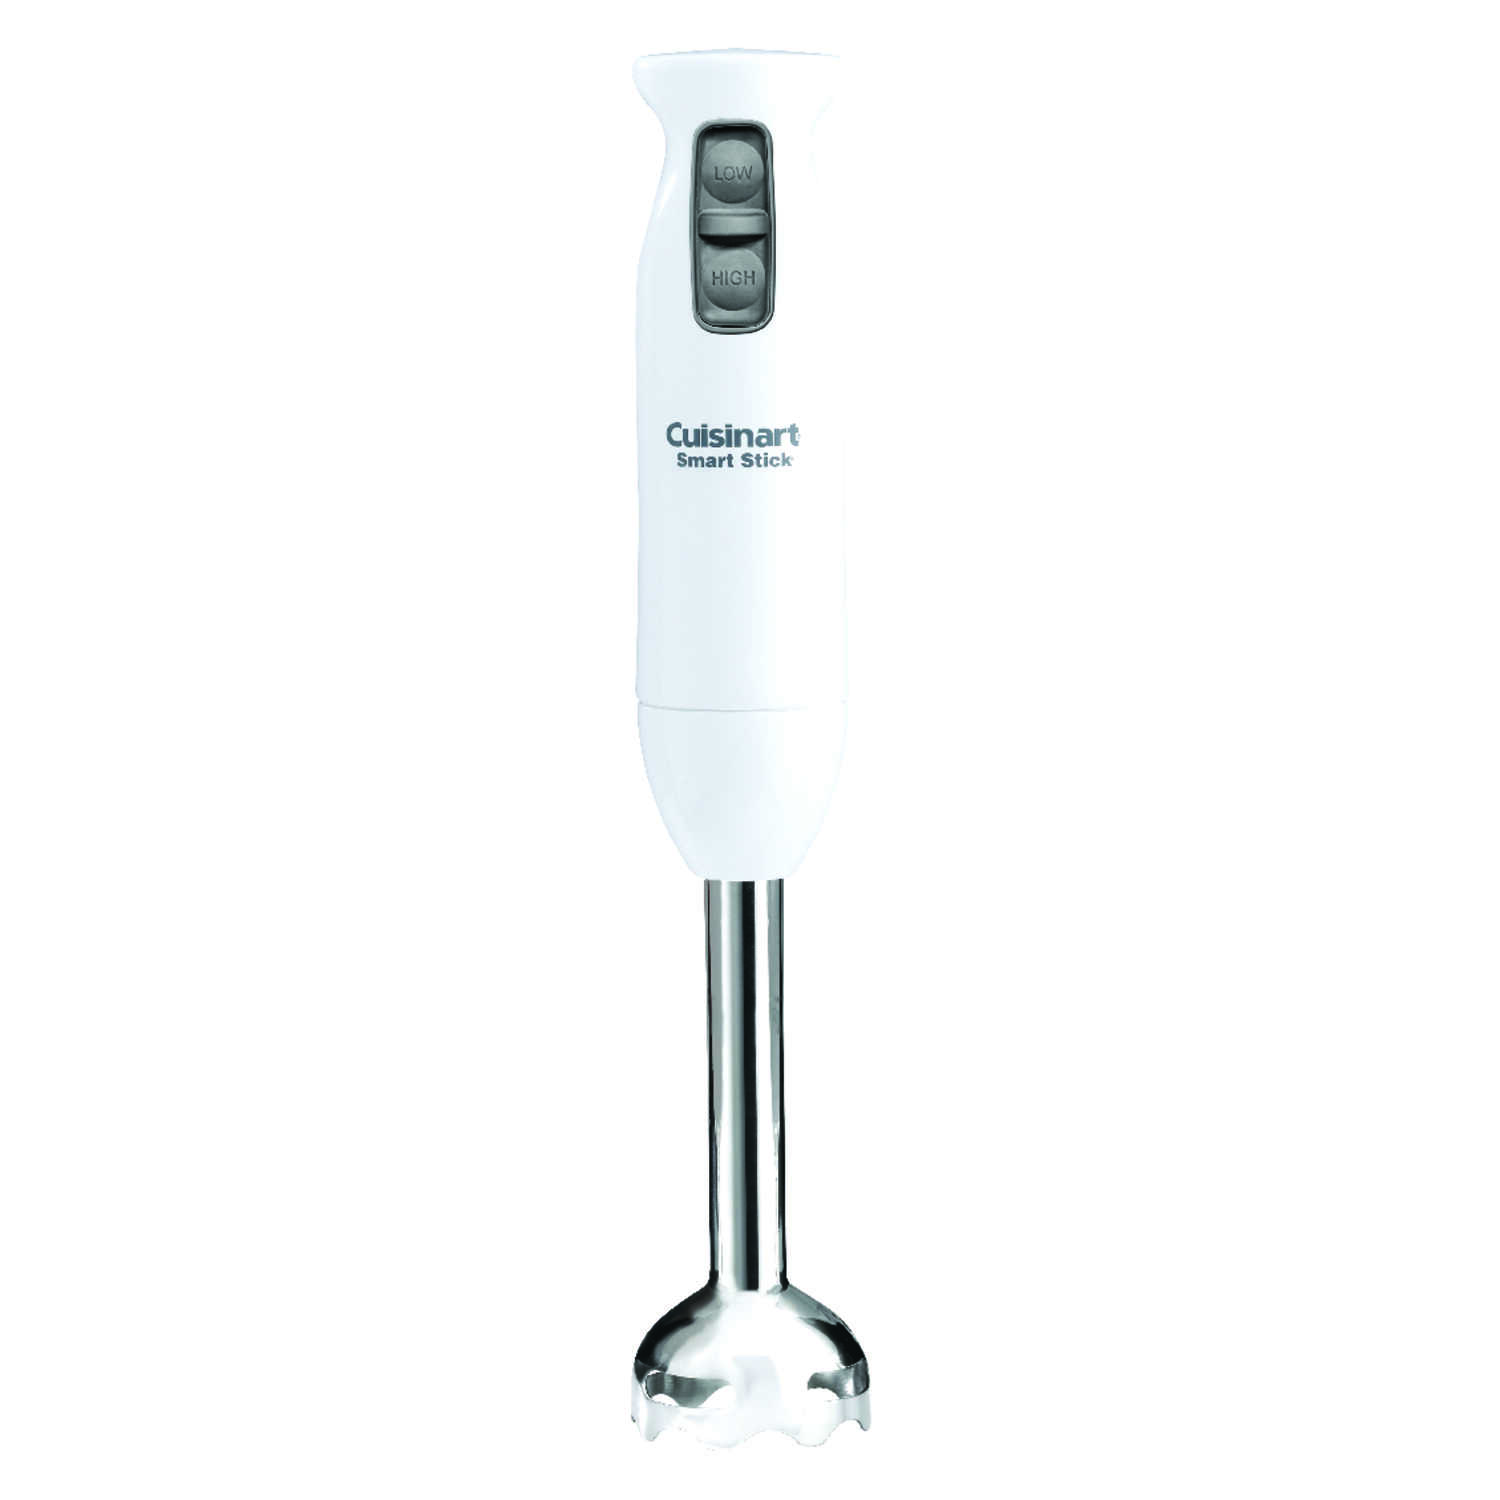 Cuisinart  Smart Stick  White  Metal/Plastic  16  2 speed Hand Blender